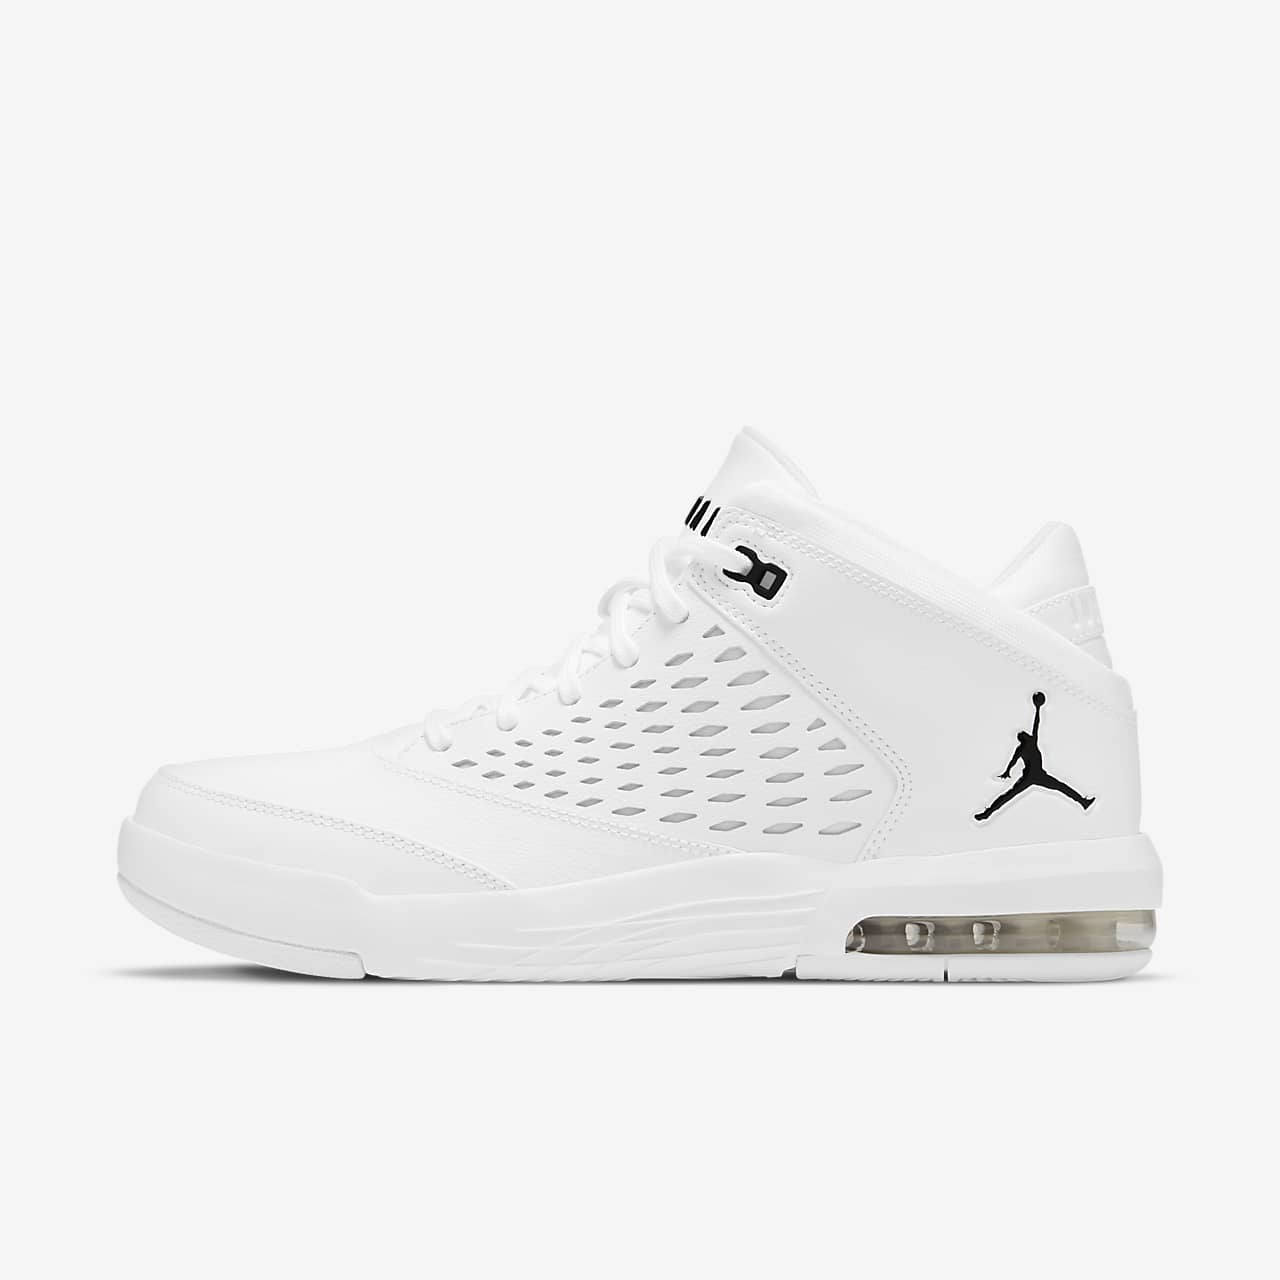 270af67298eef2 Jordan Flight Origin 4 Men s Shoe. Nike.com AU